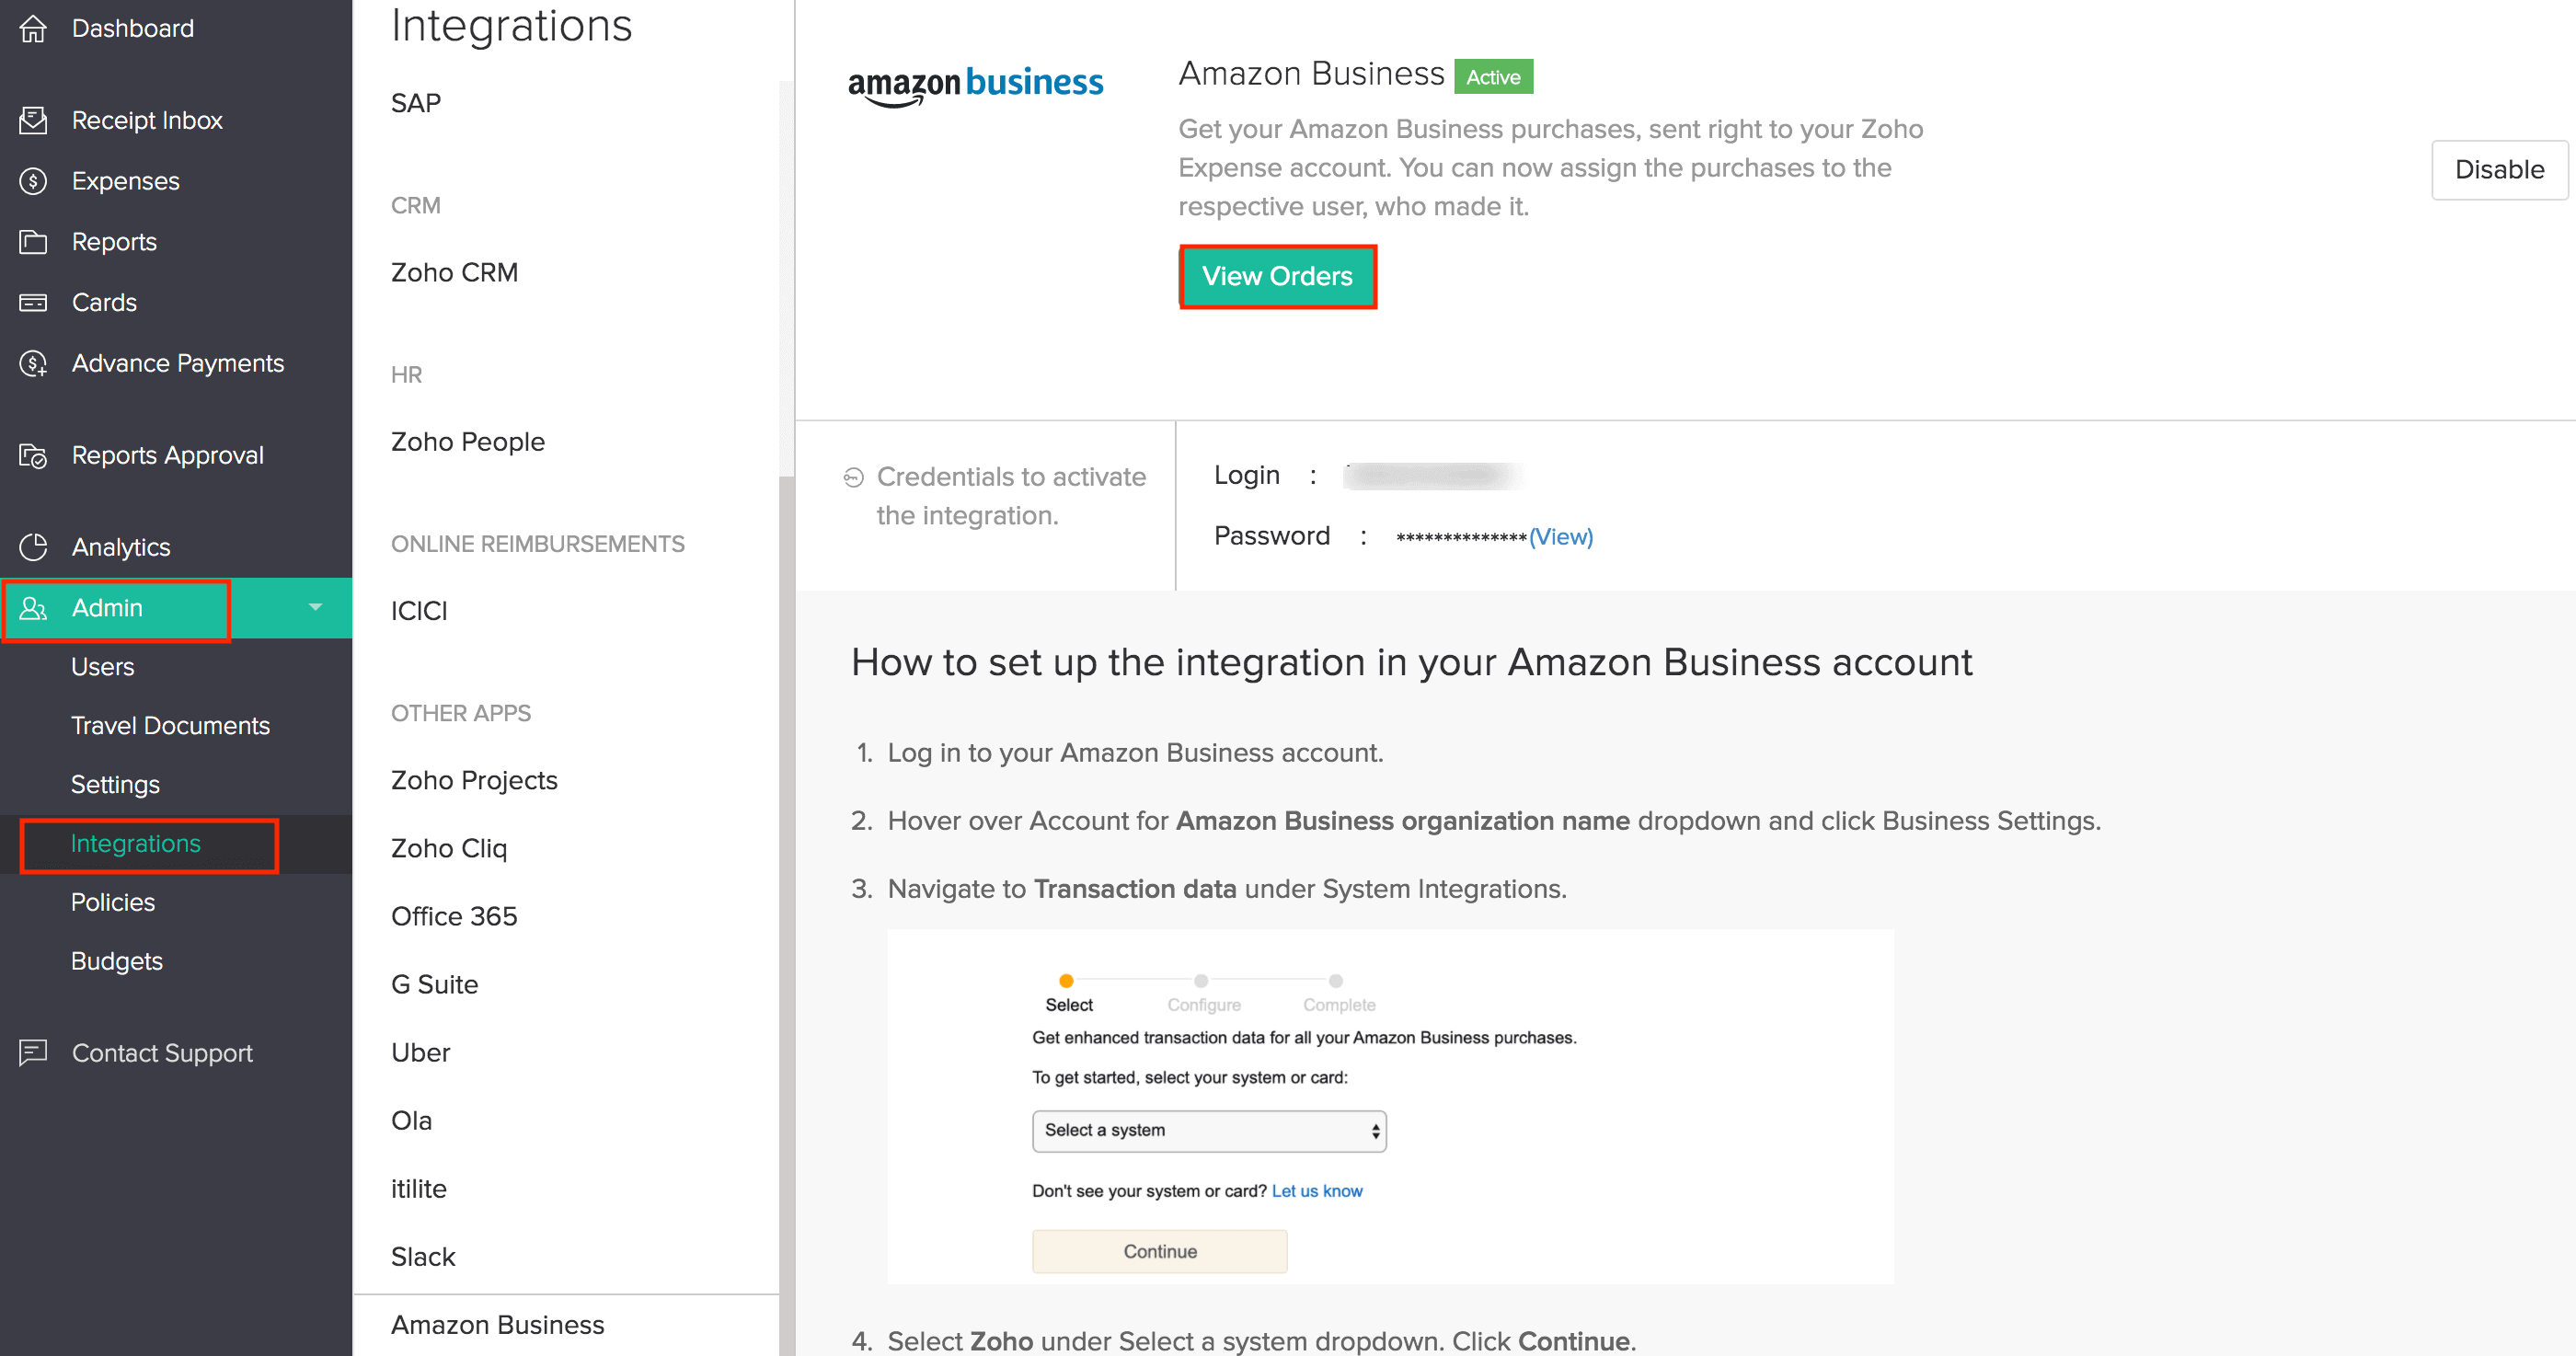 Amazon Business Integration Details